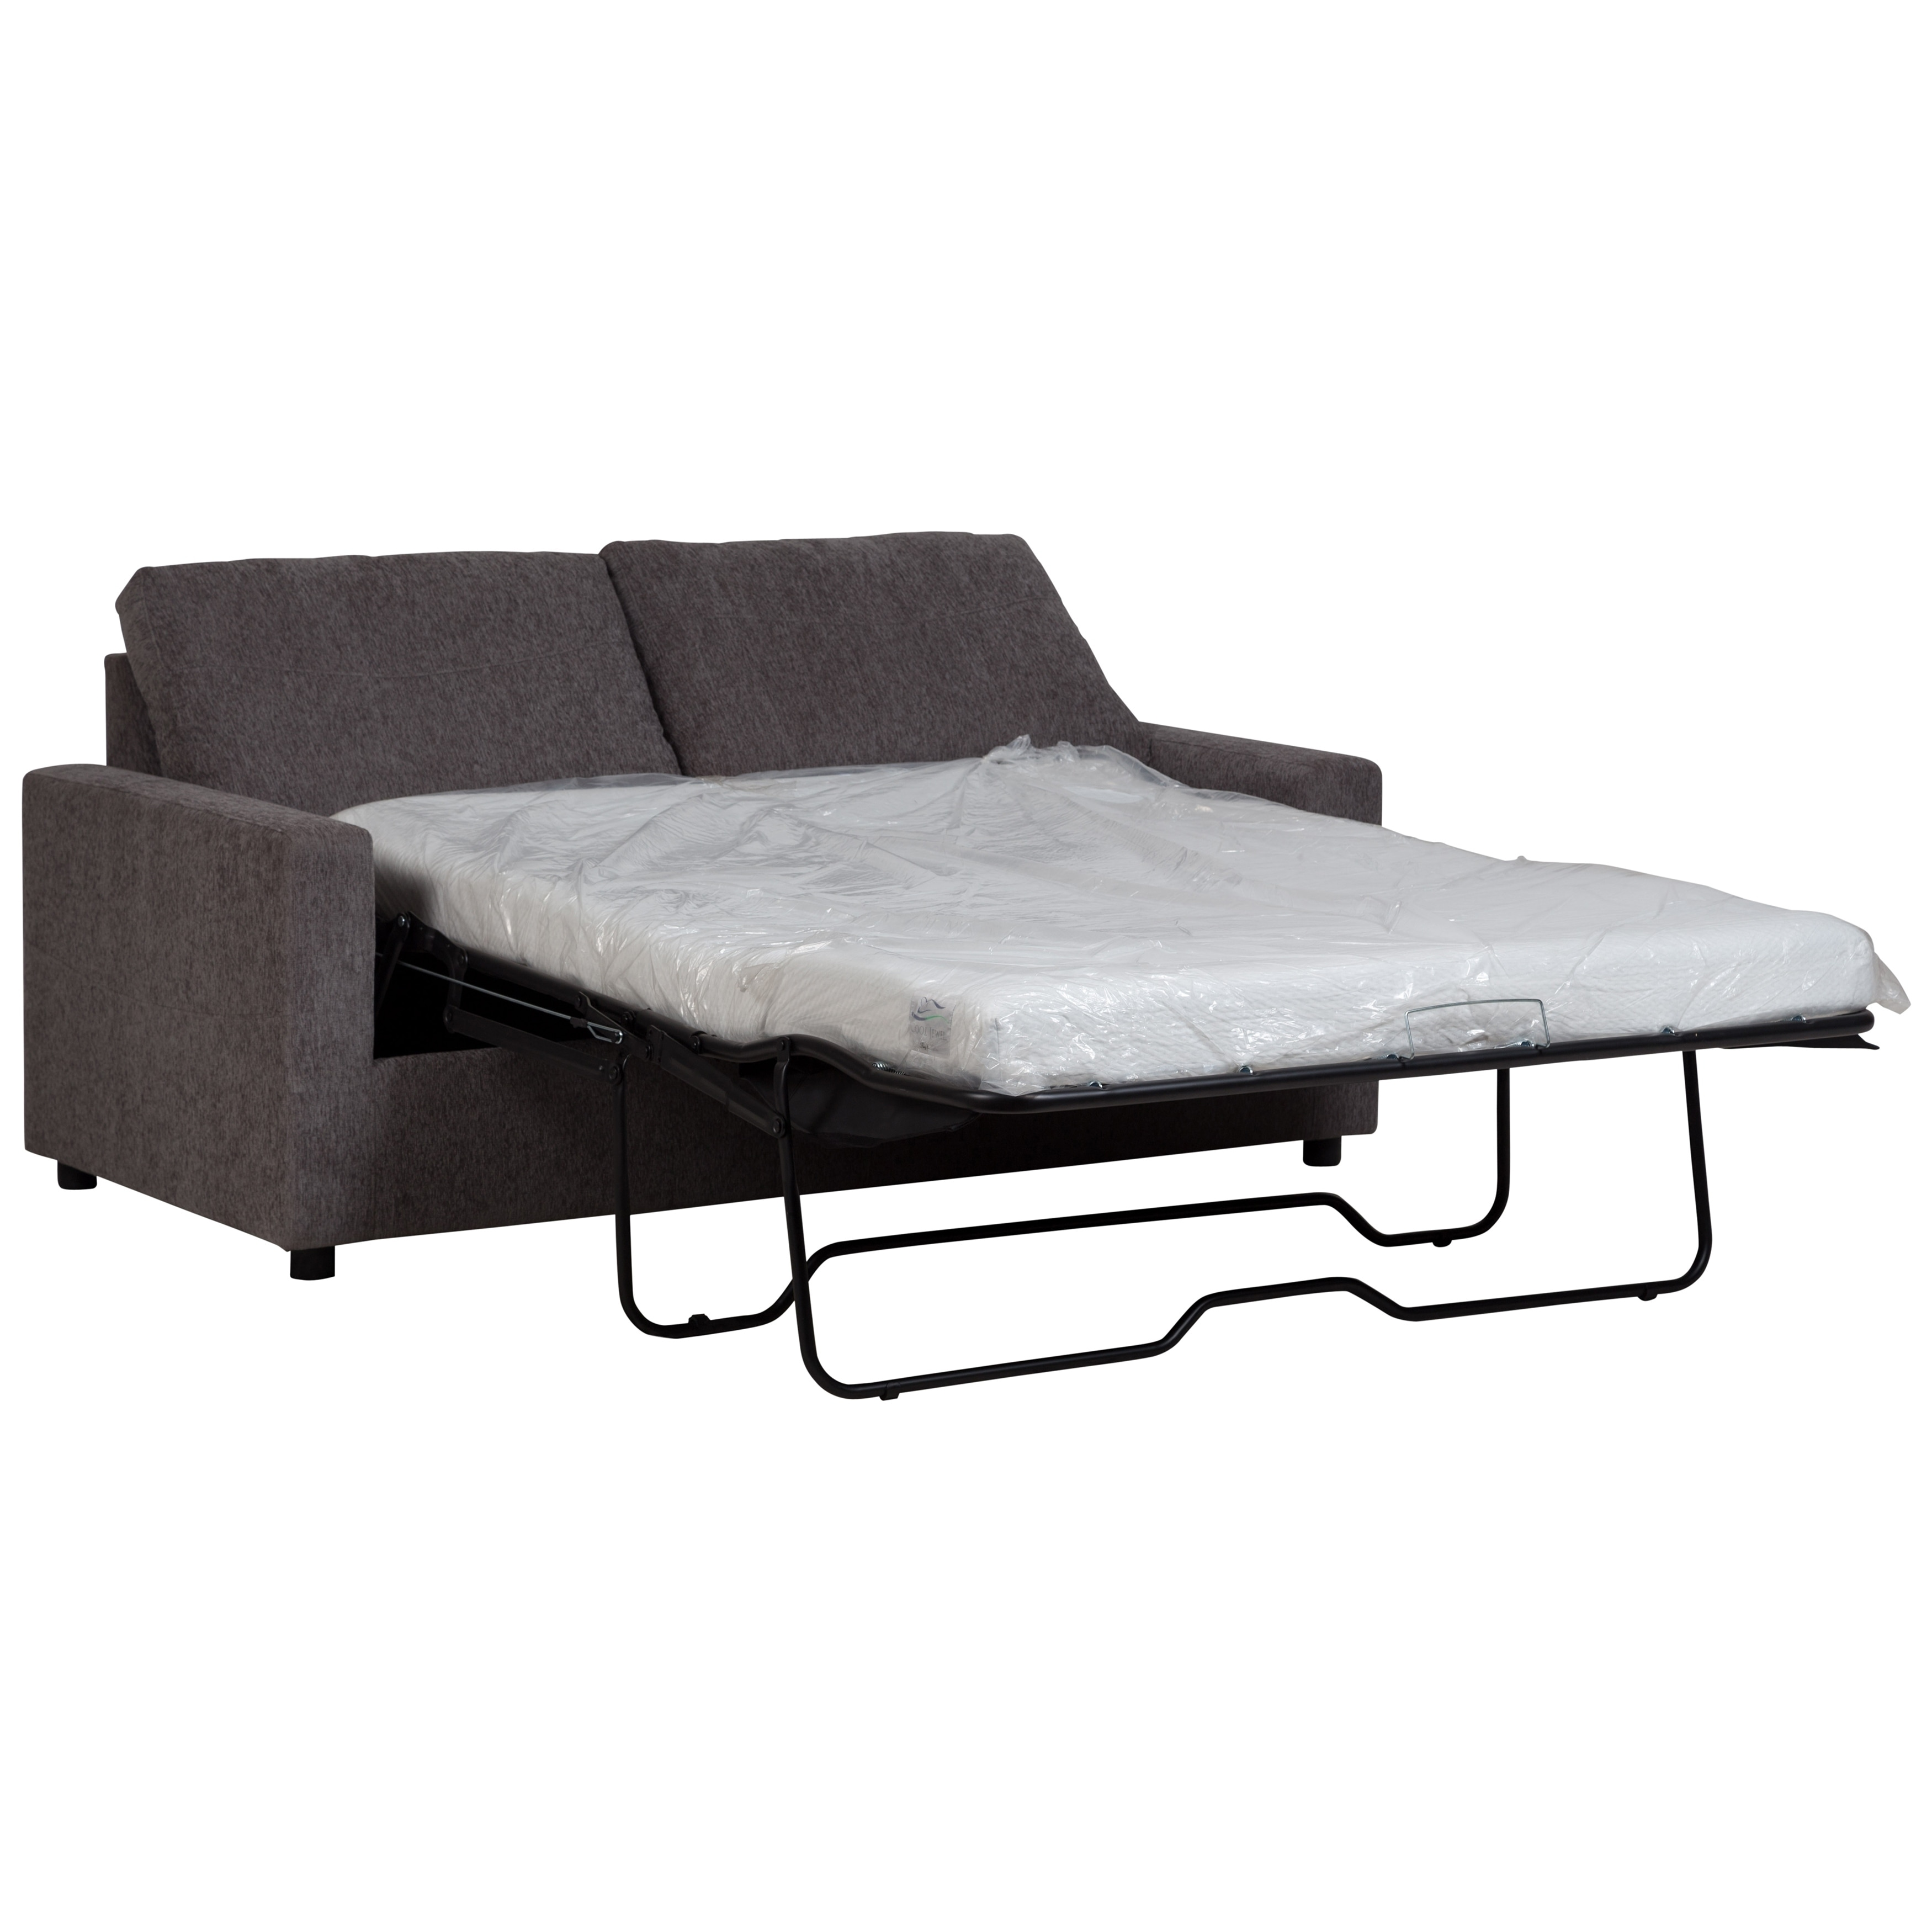 Porter Designs Cindy Grey Upholstered Memory Foam Queen Size Sofa Bed Free Shipping Today 28182081